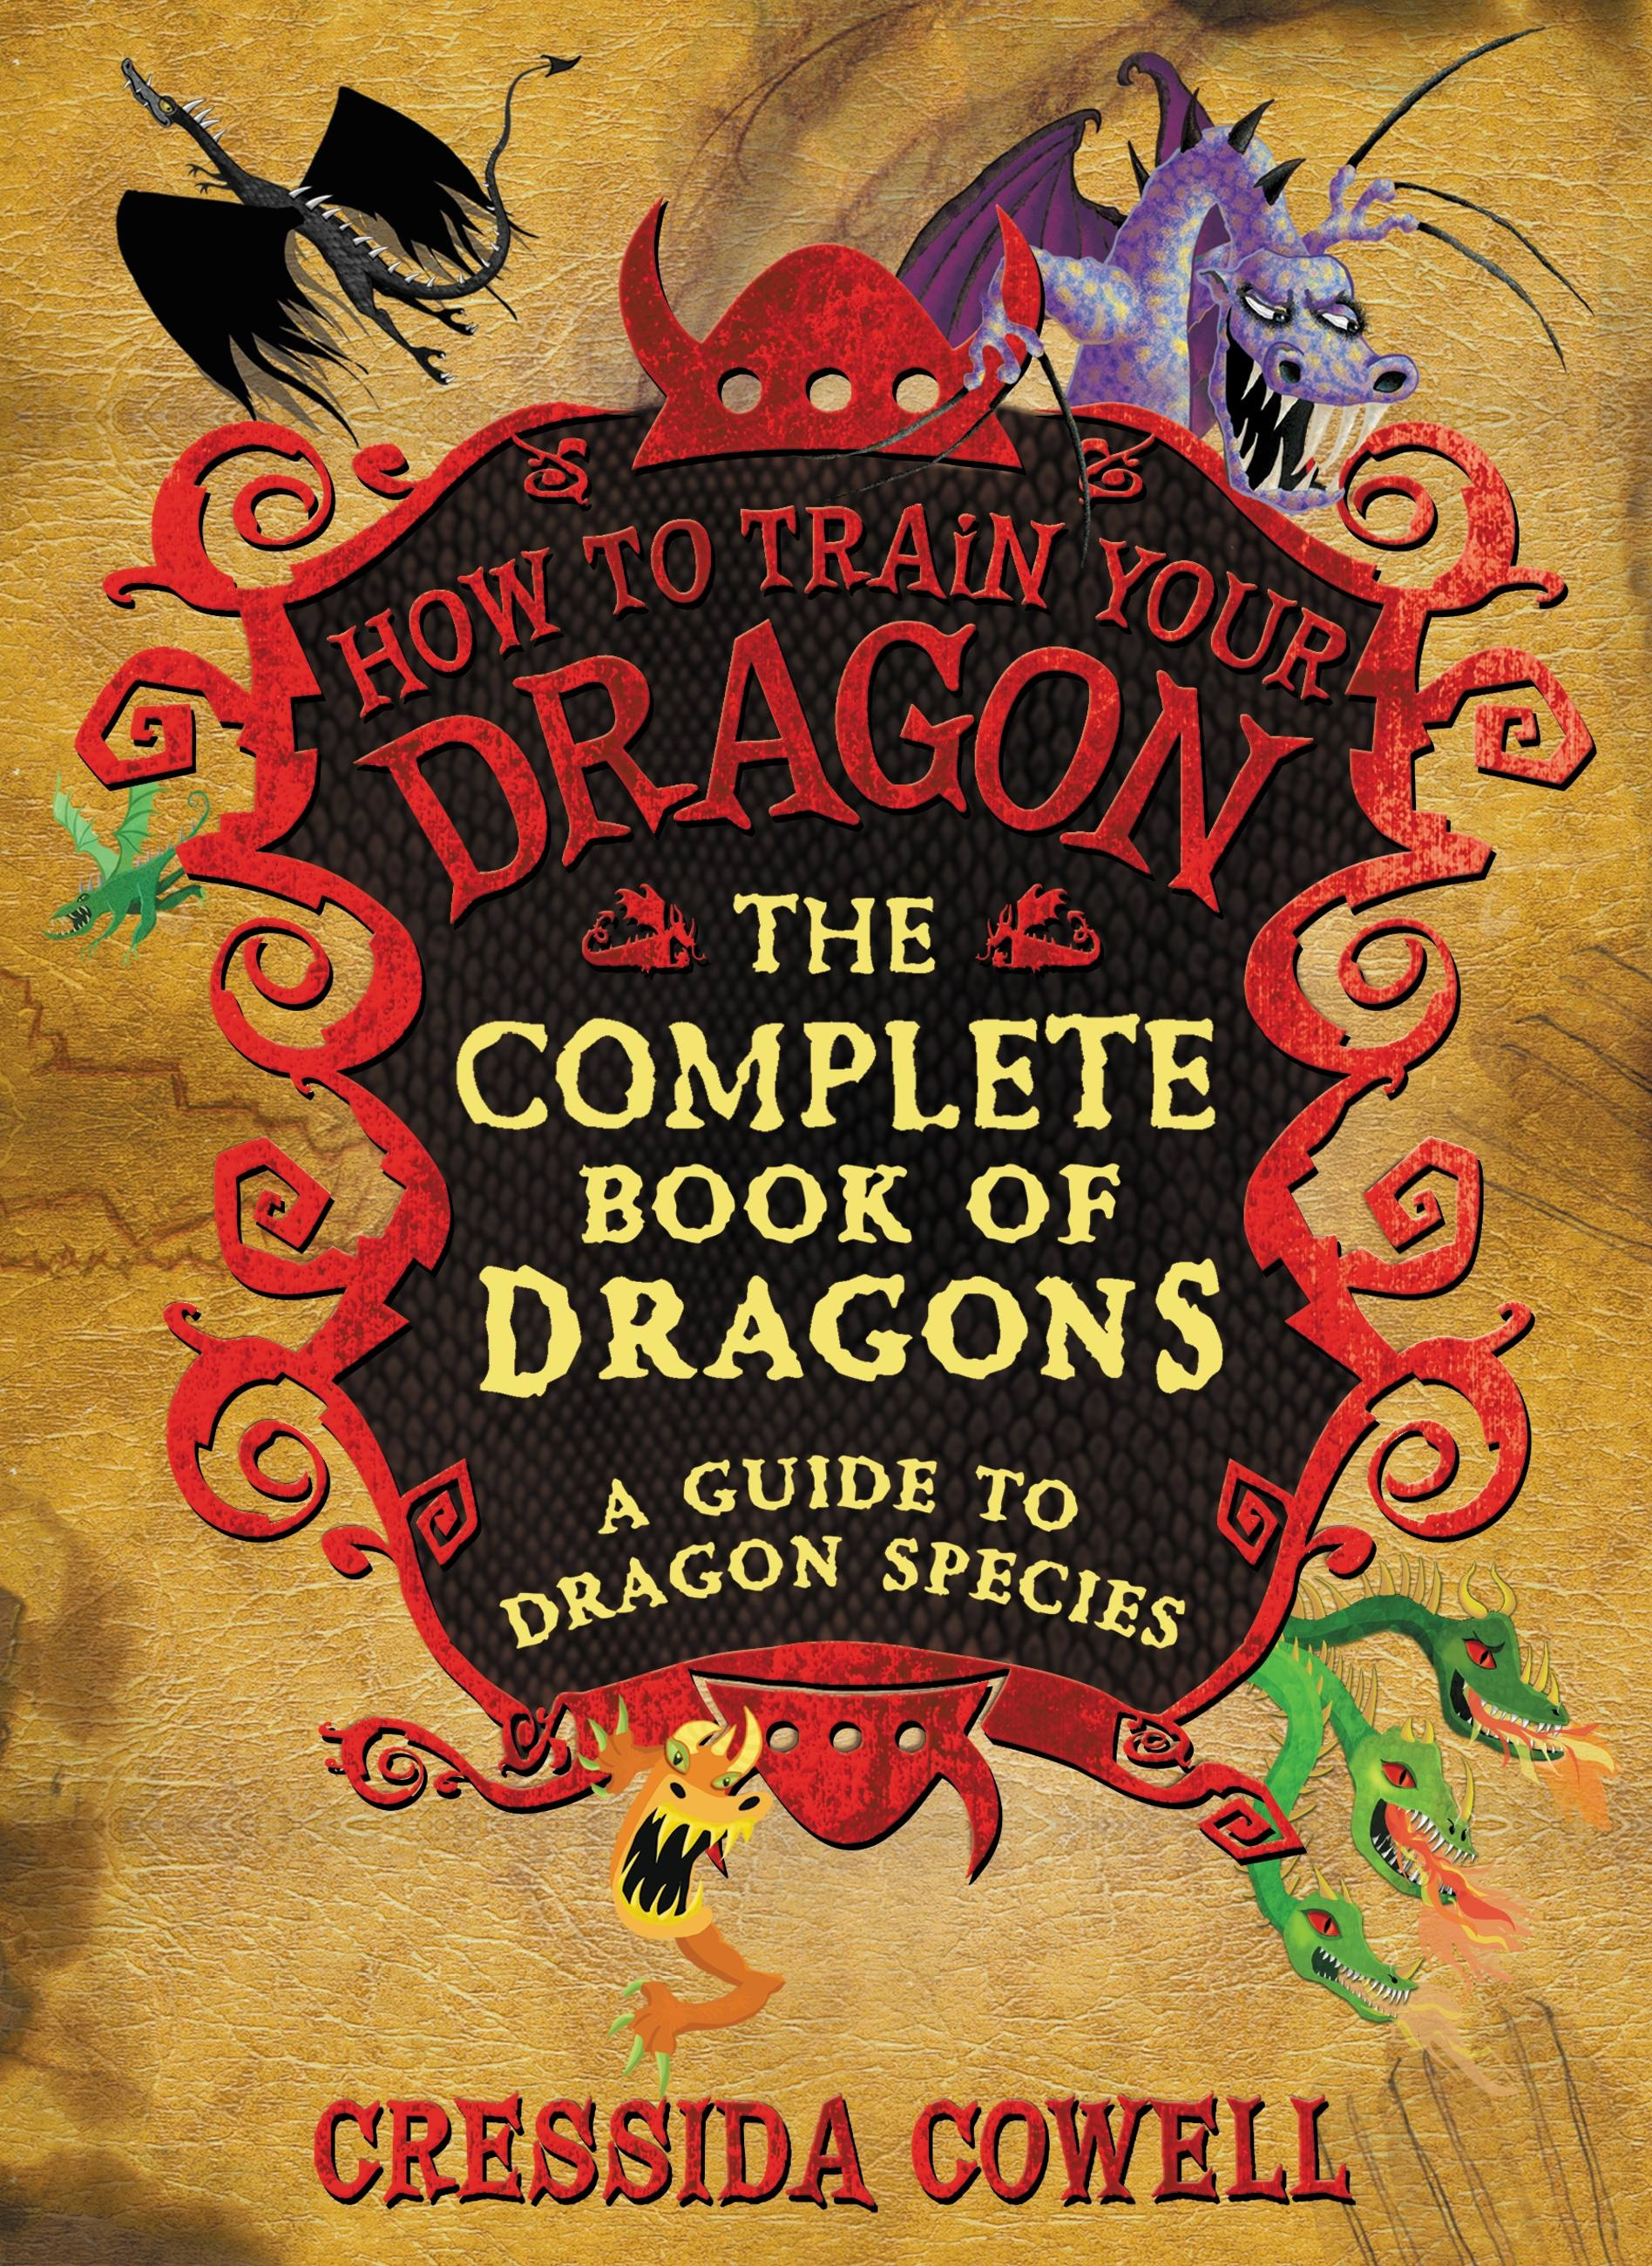 The Complete Book of Dragons by Cressida Cowell | Hachette ...